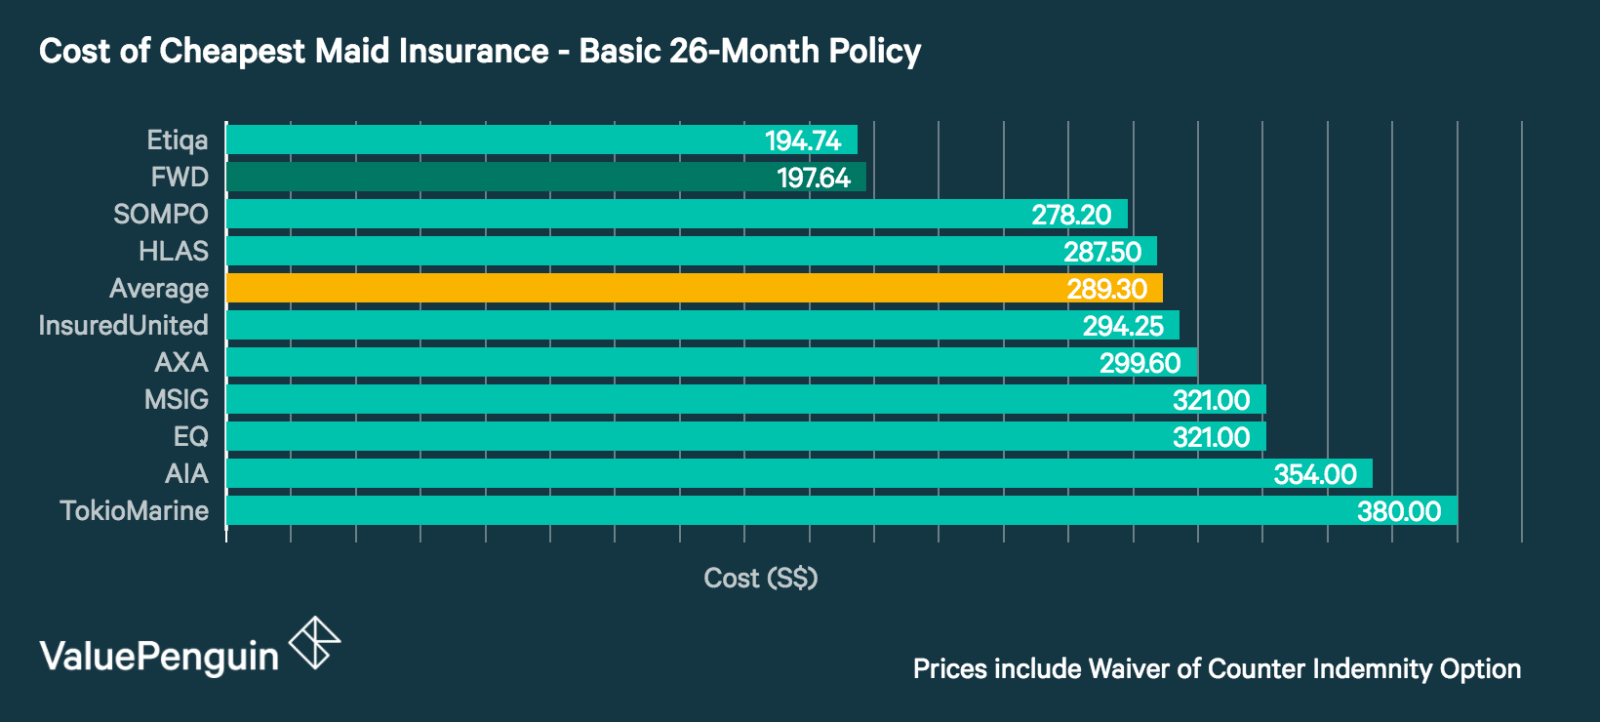 FWD Premiums Compared to Other Insurers